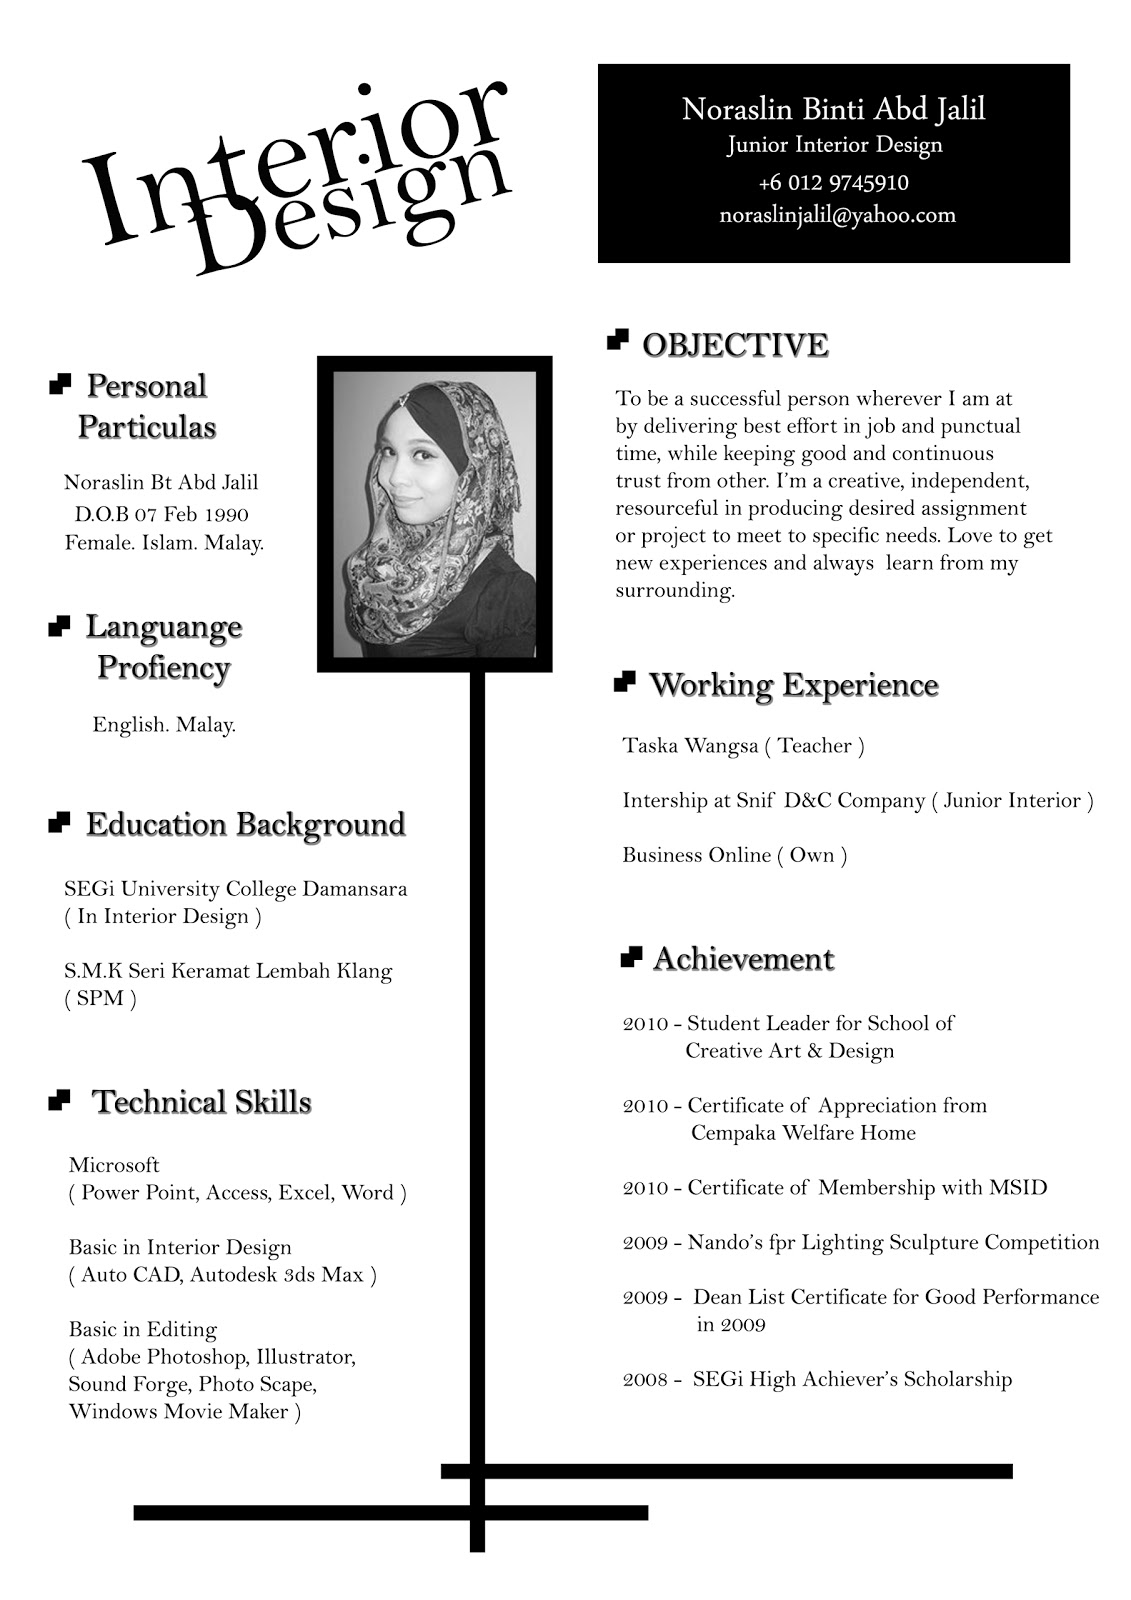 i u0026 39 m future of interior designer     resume by nj